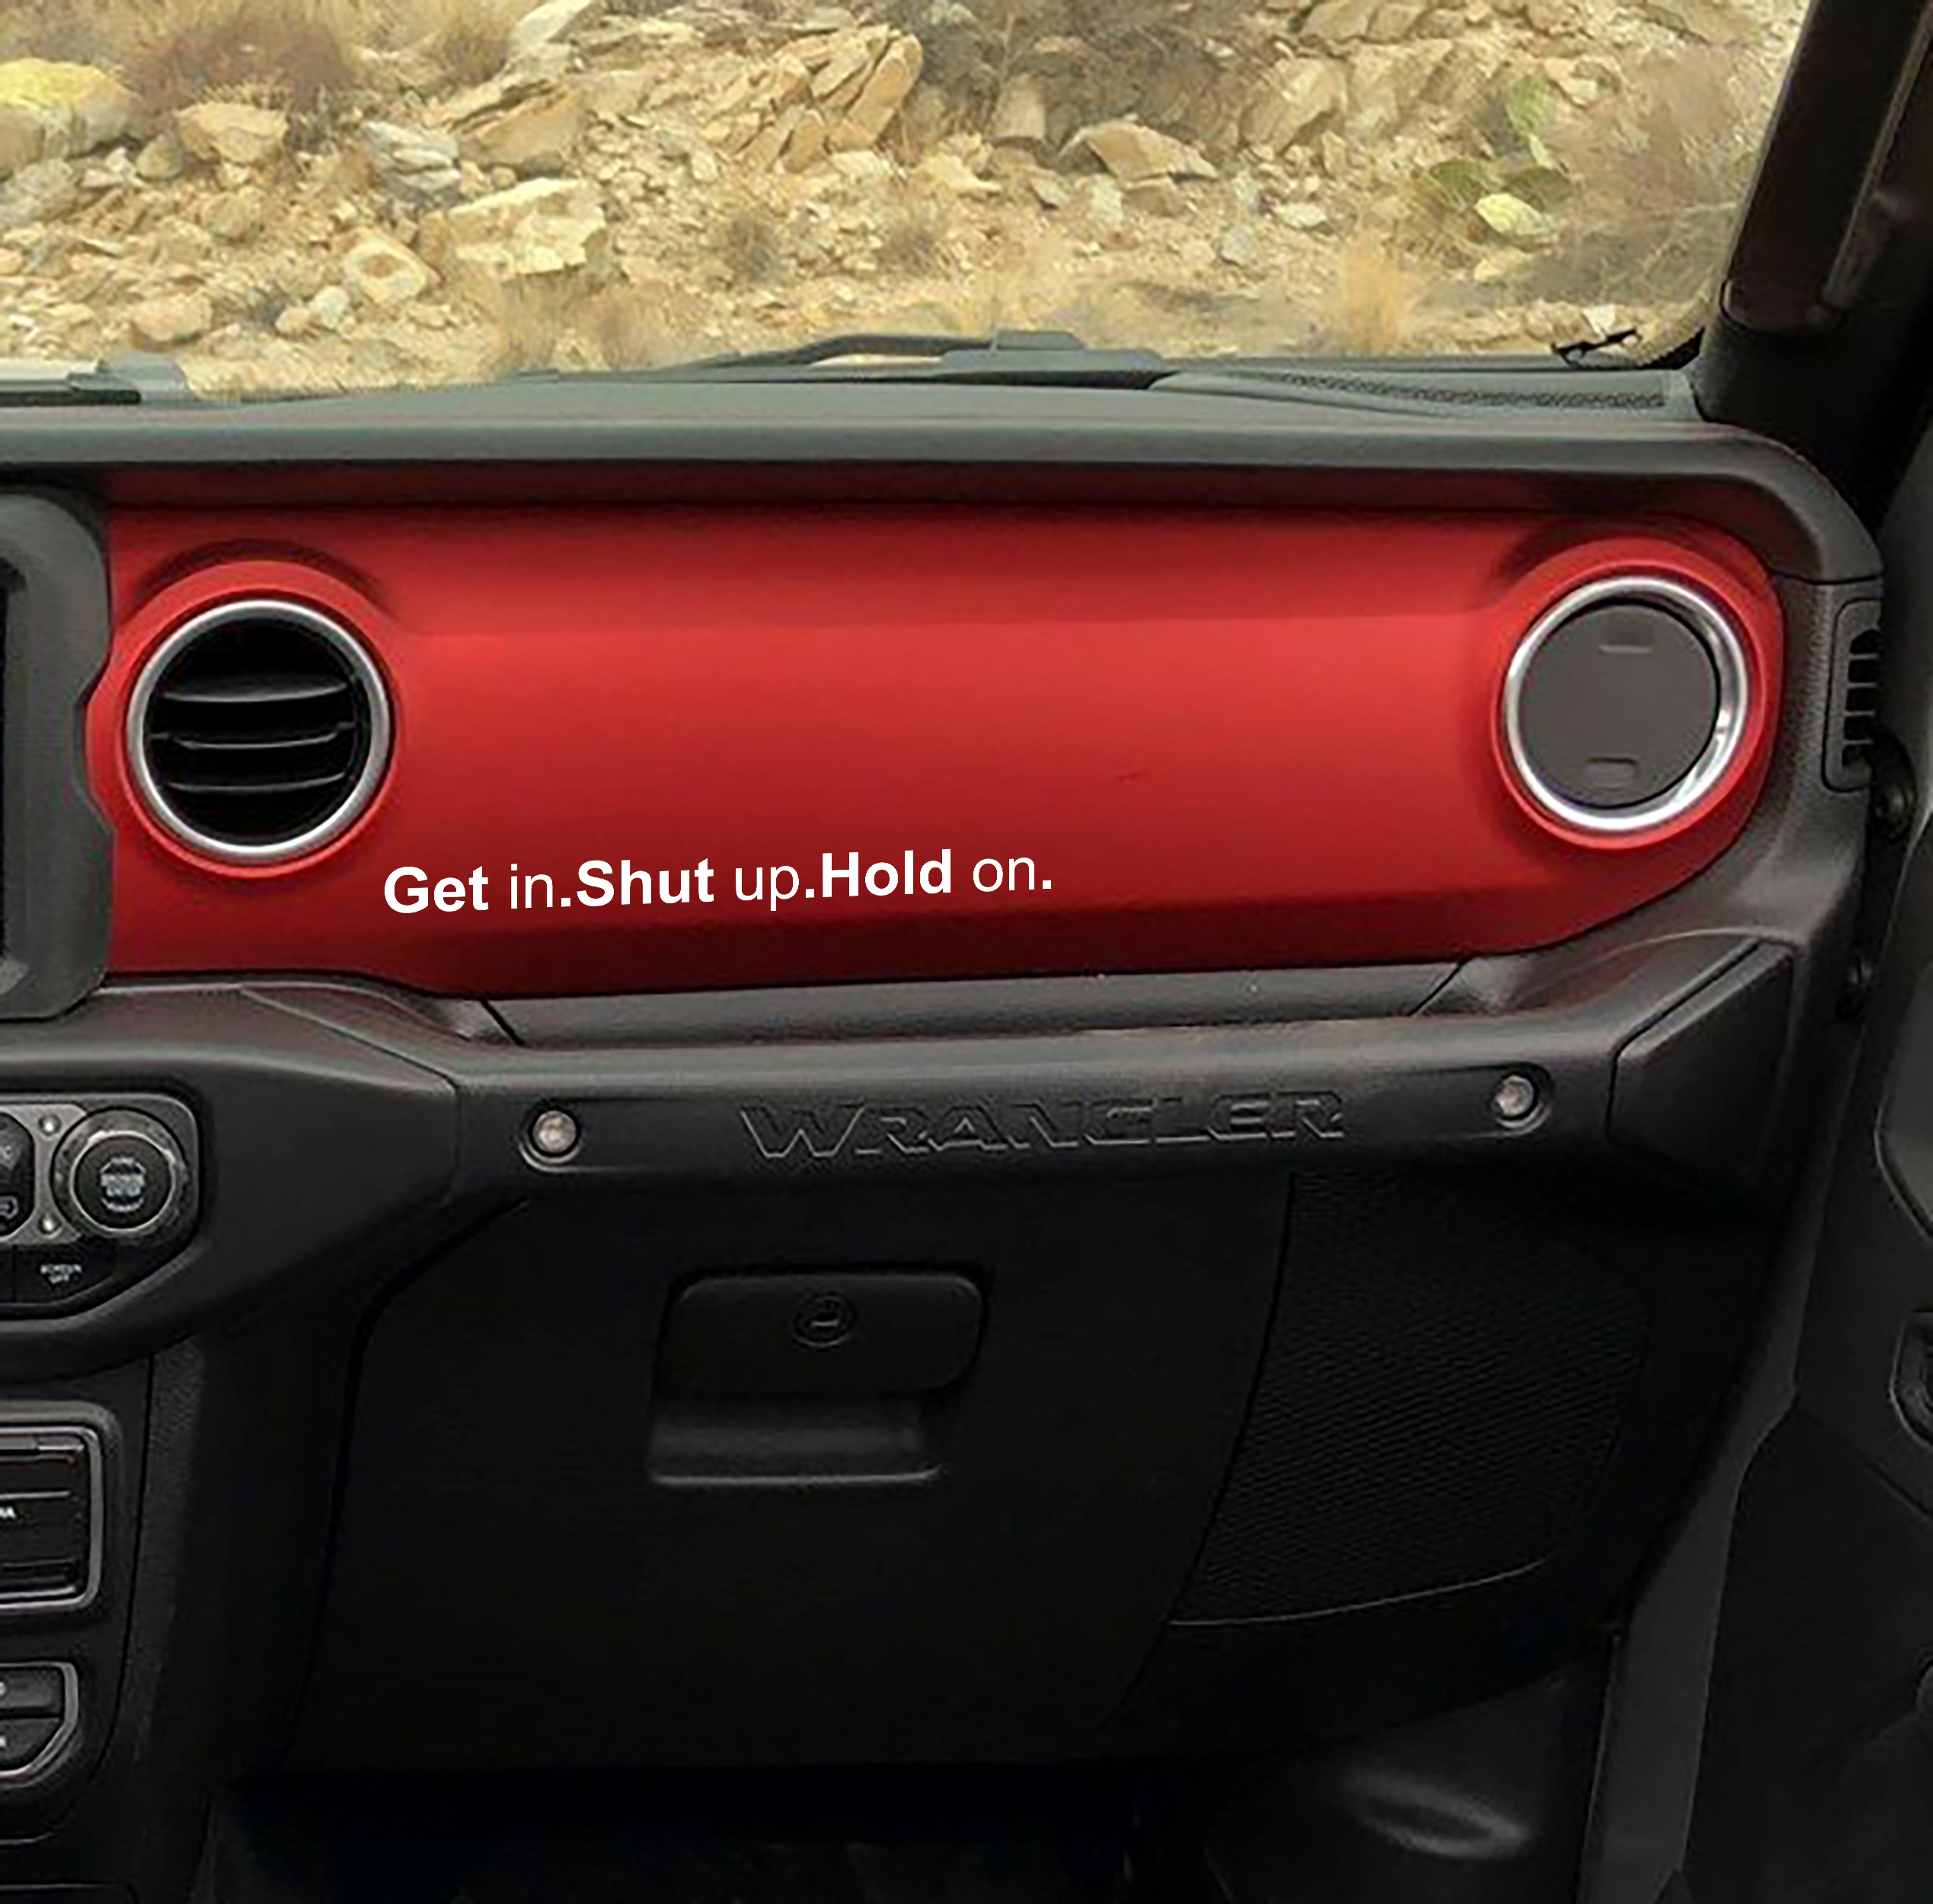 Vehicle Rules Get in Shut up Hang on Vinyl Decal